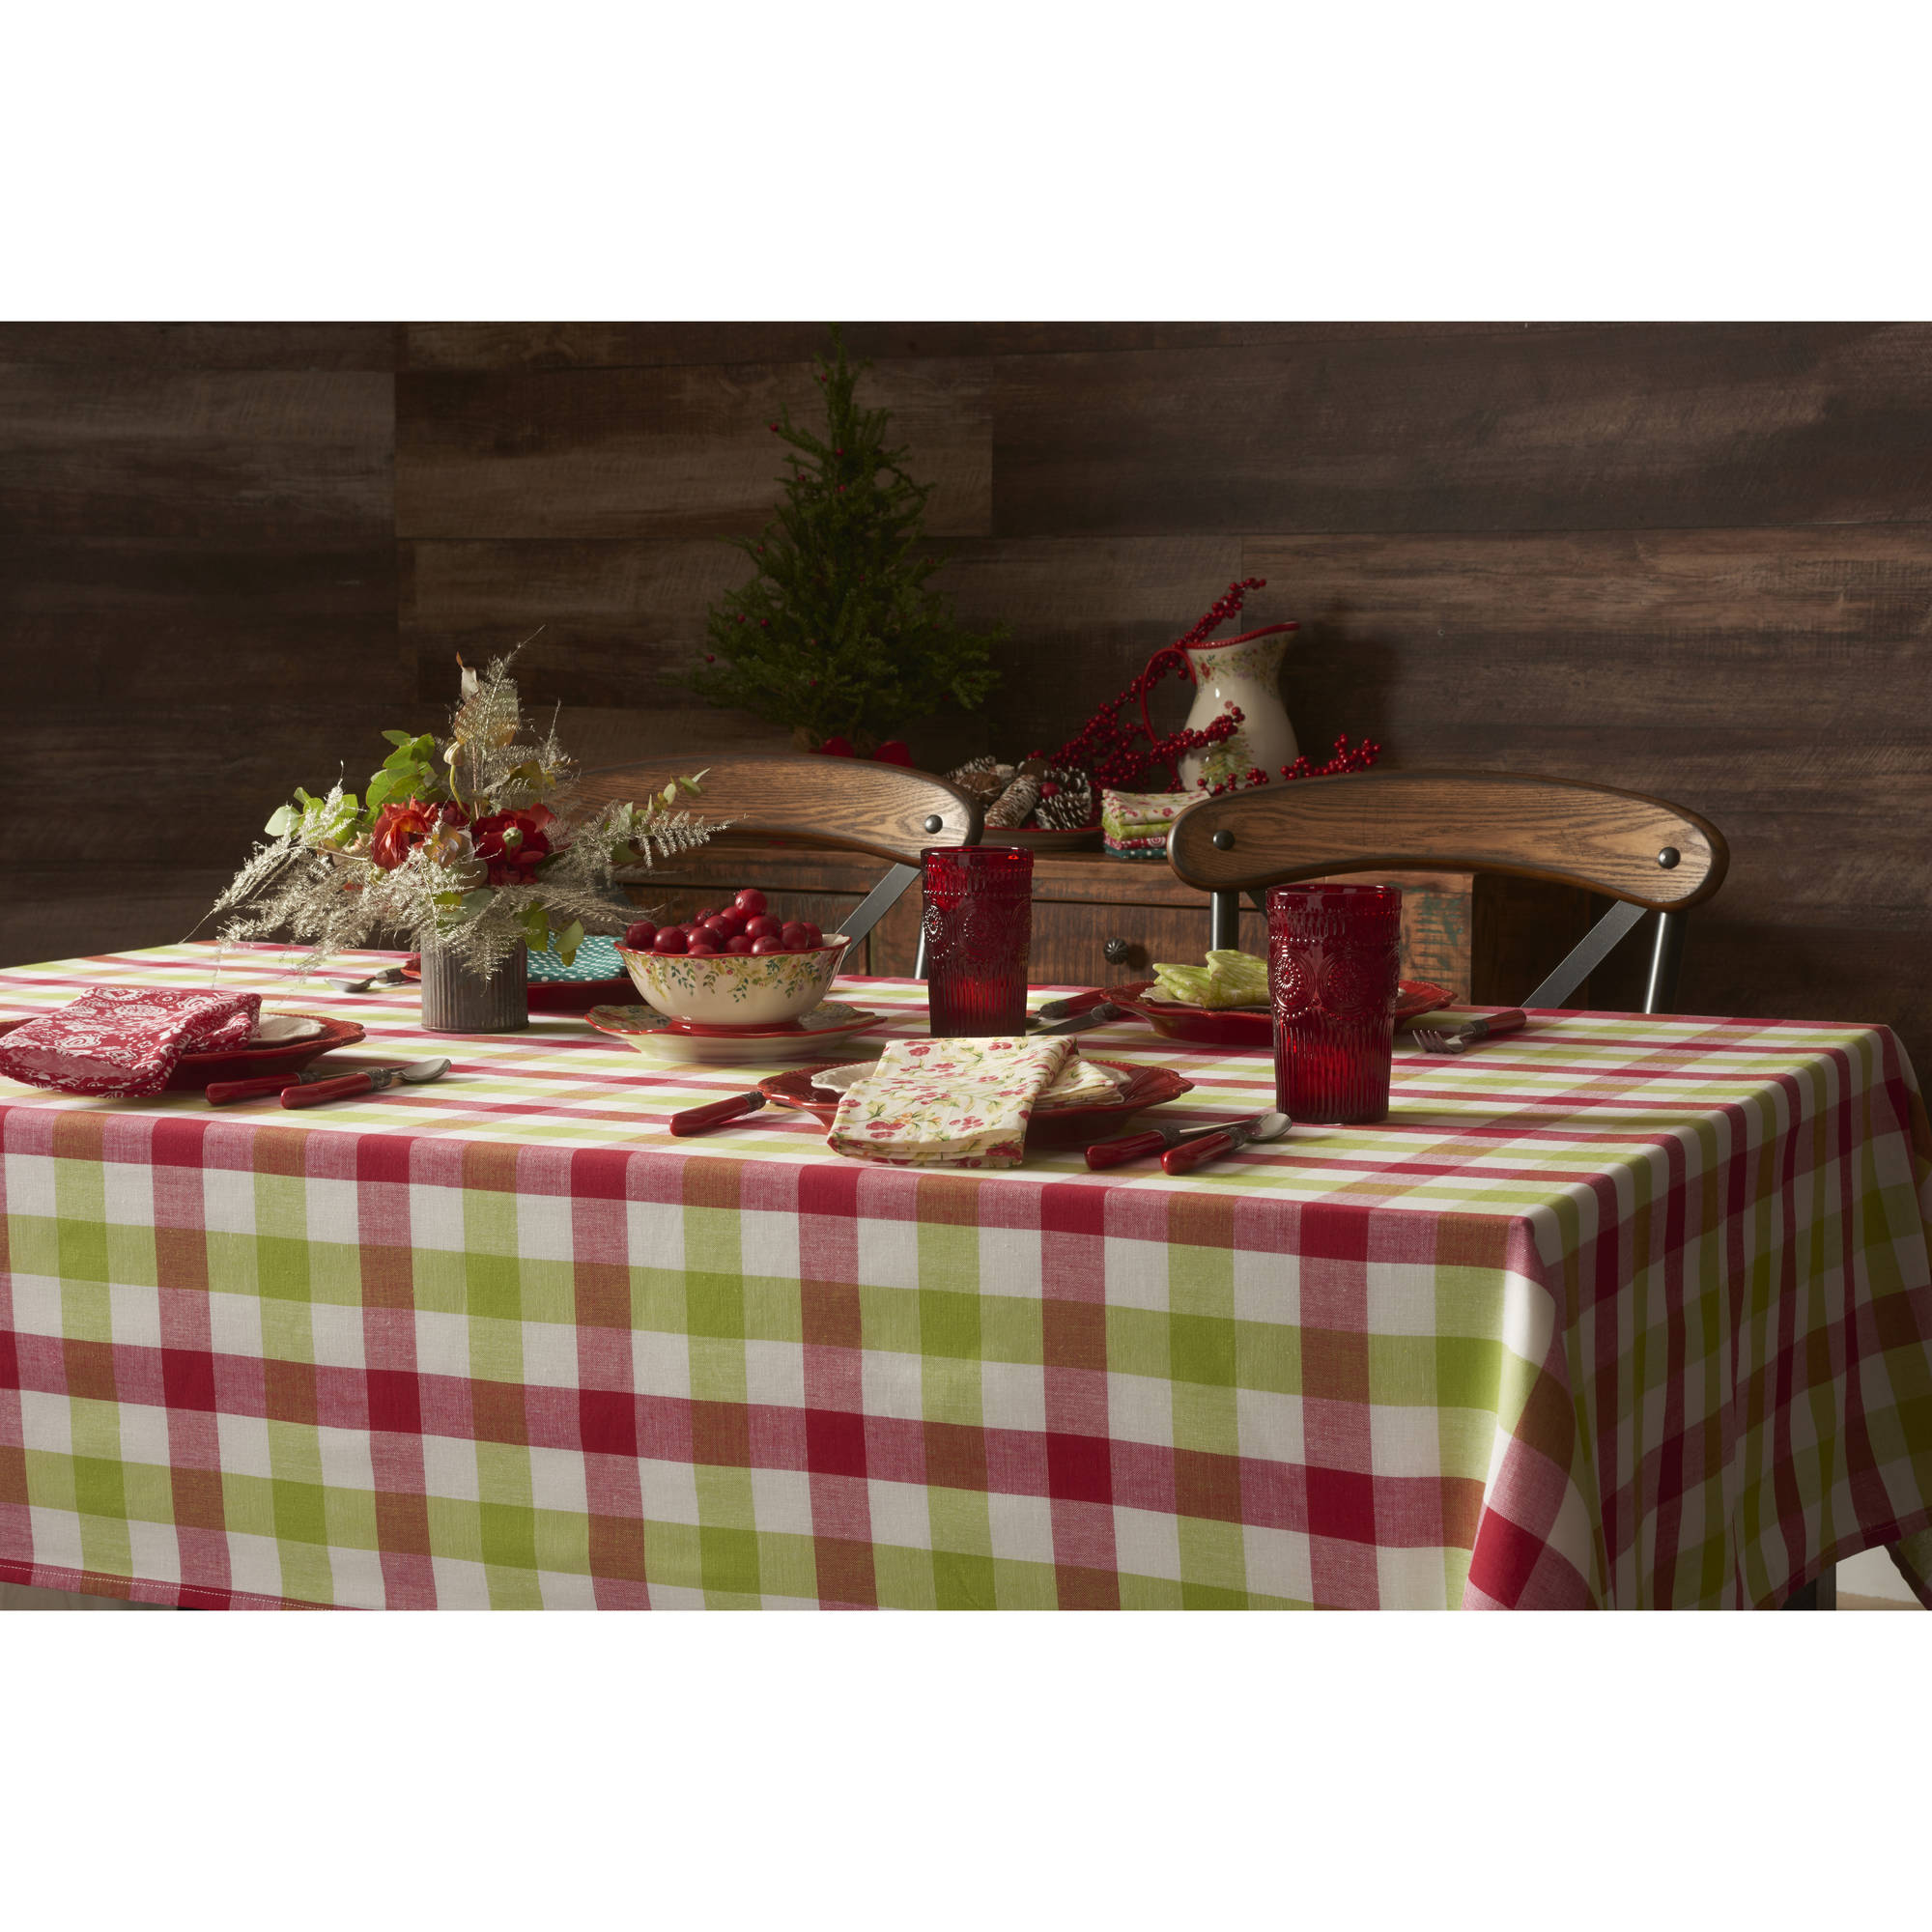 "The Pioneer Woman Holiday Charming Check Tablecloth, 60"" x 120"""